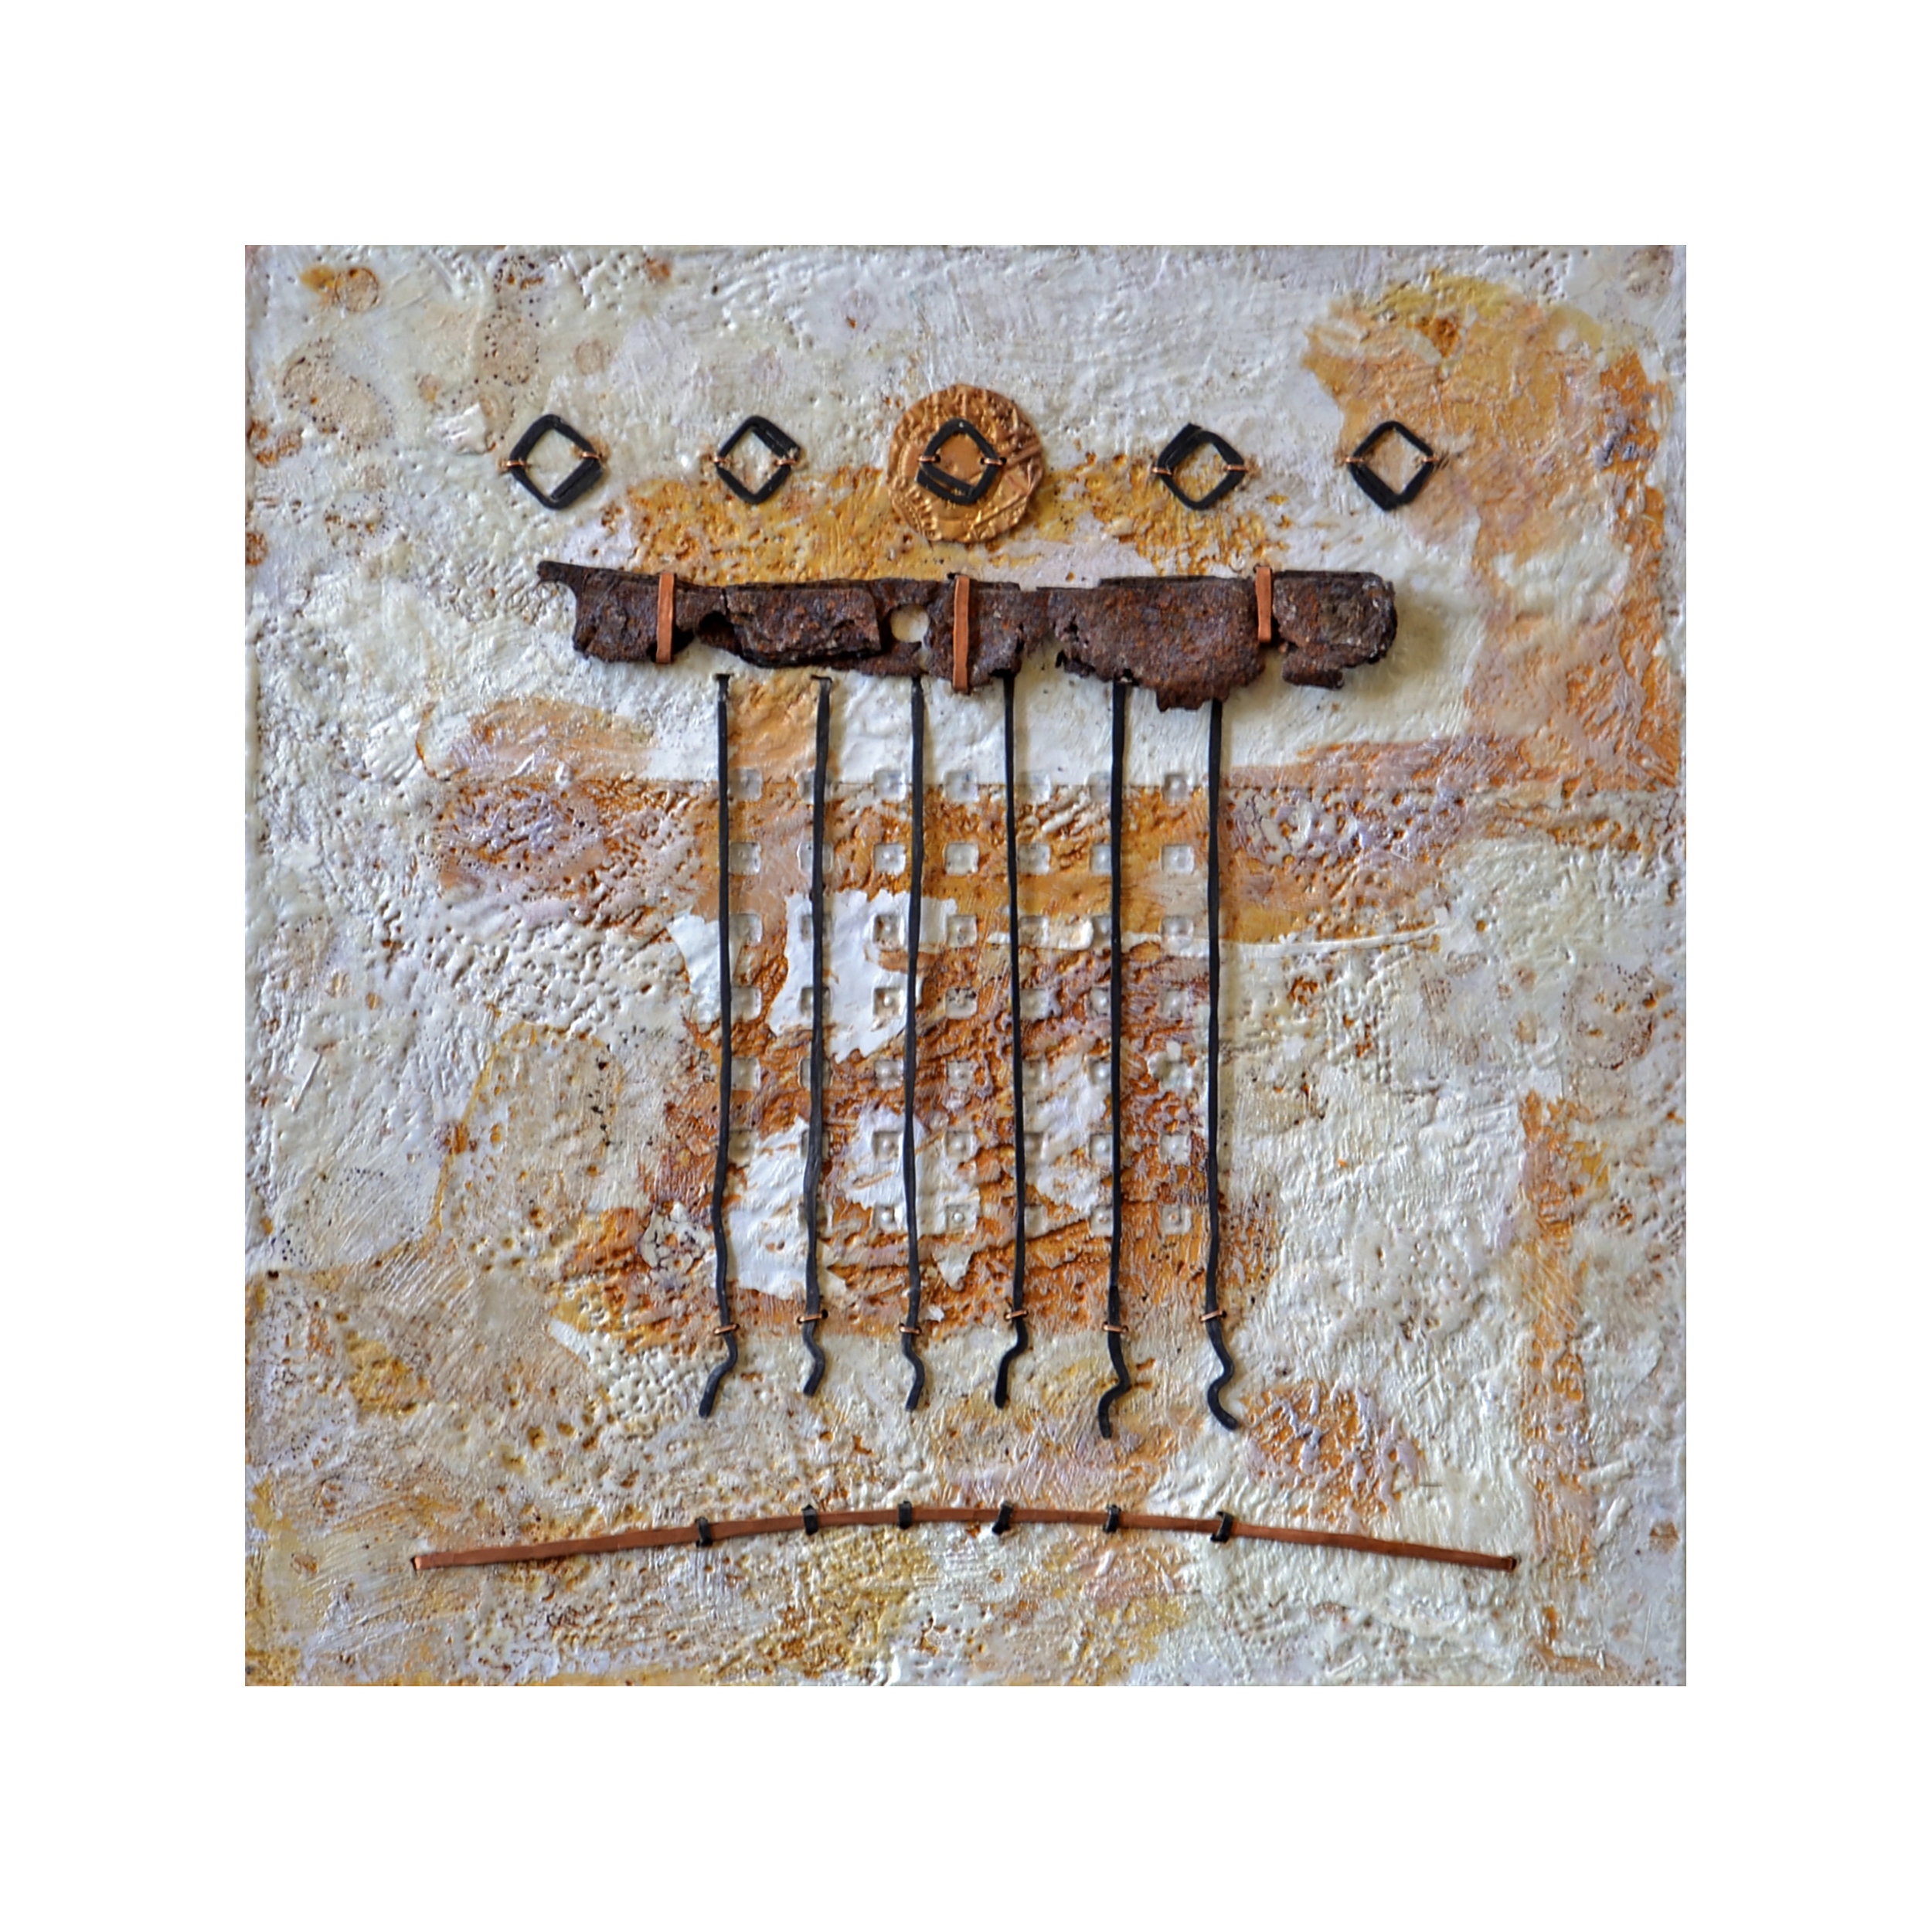 Conviction   10 x 10  Encaustic and Mixed Media on Panel  $200